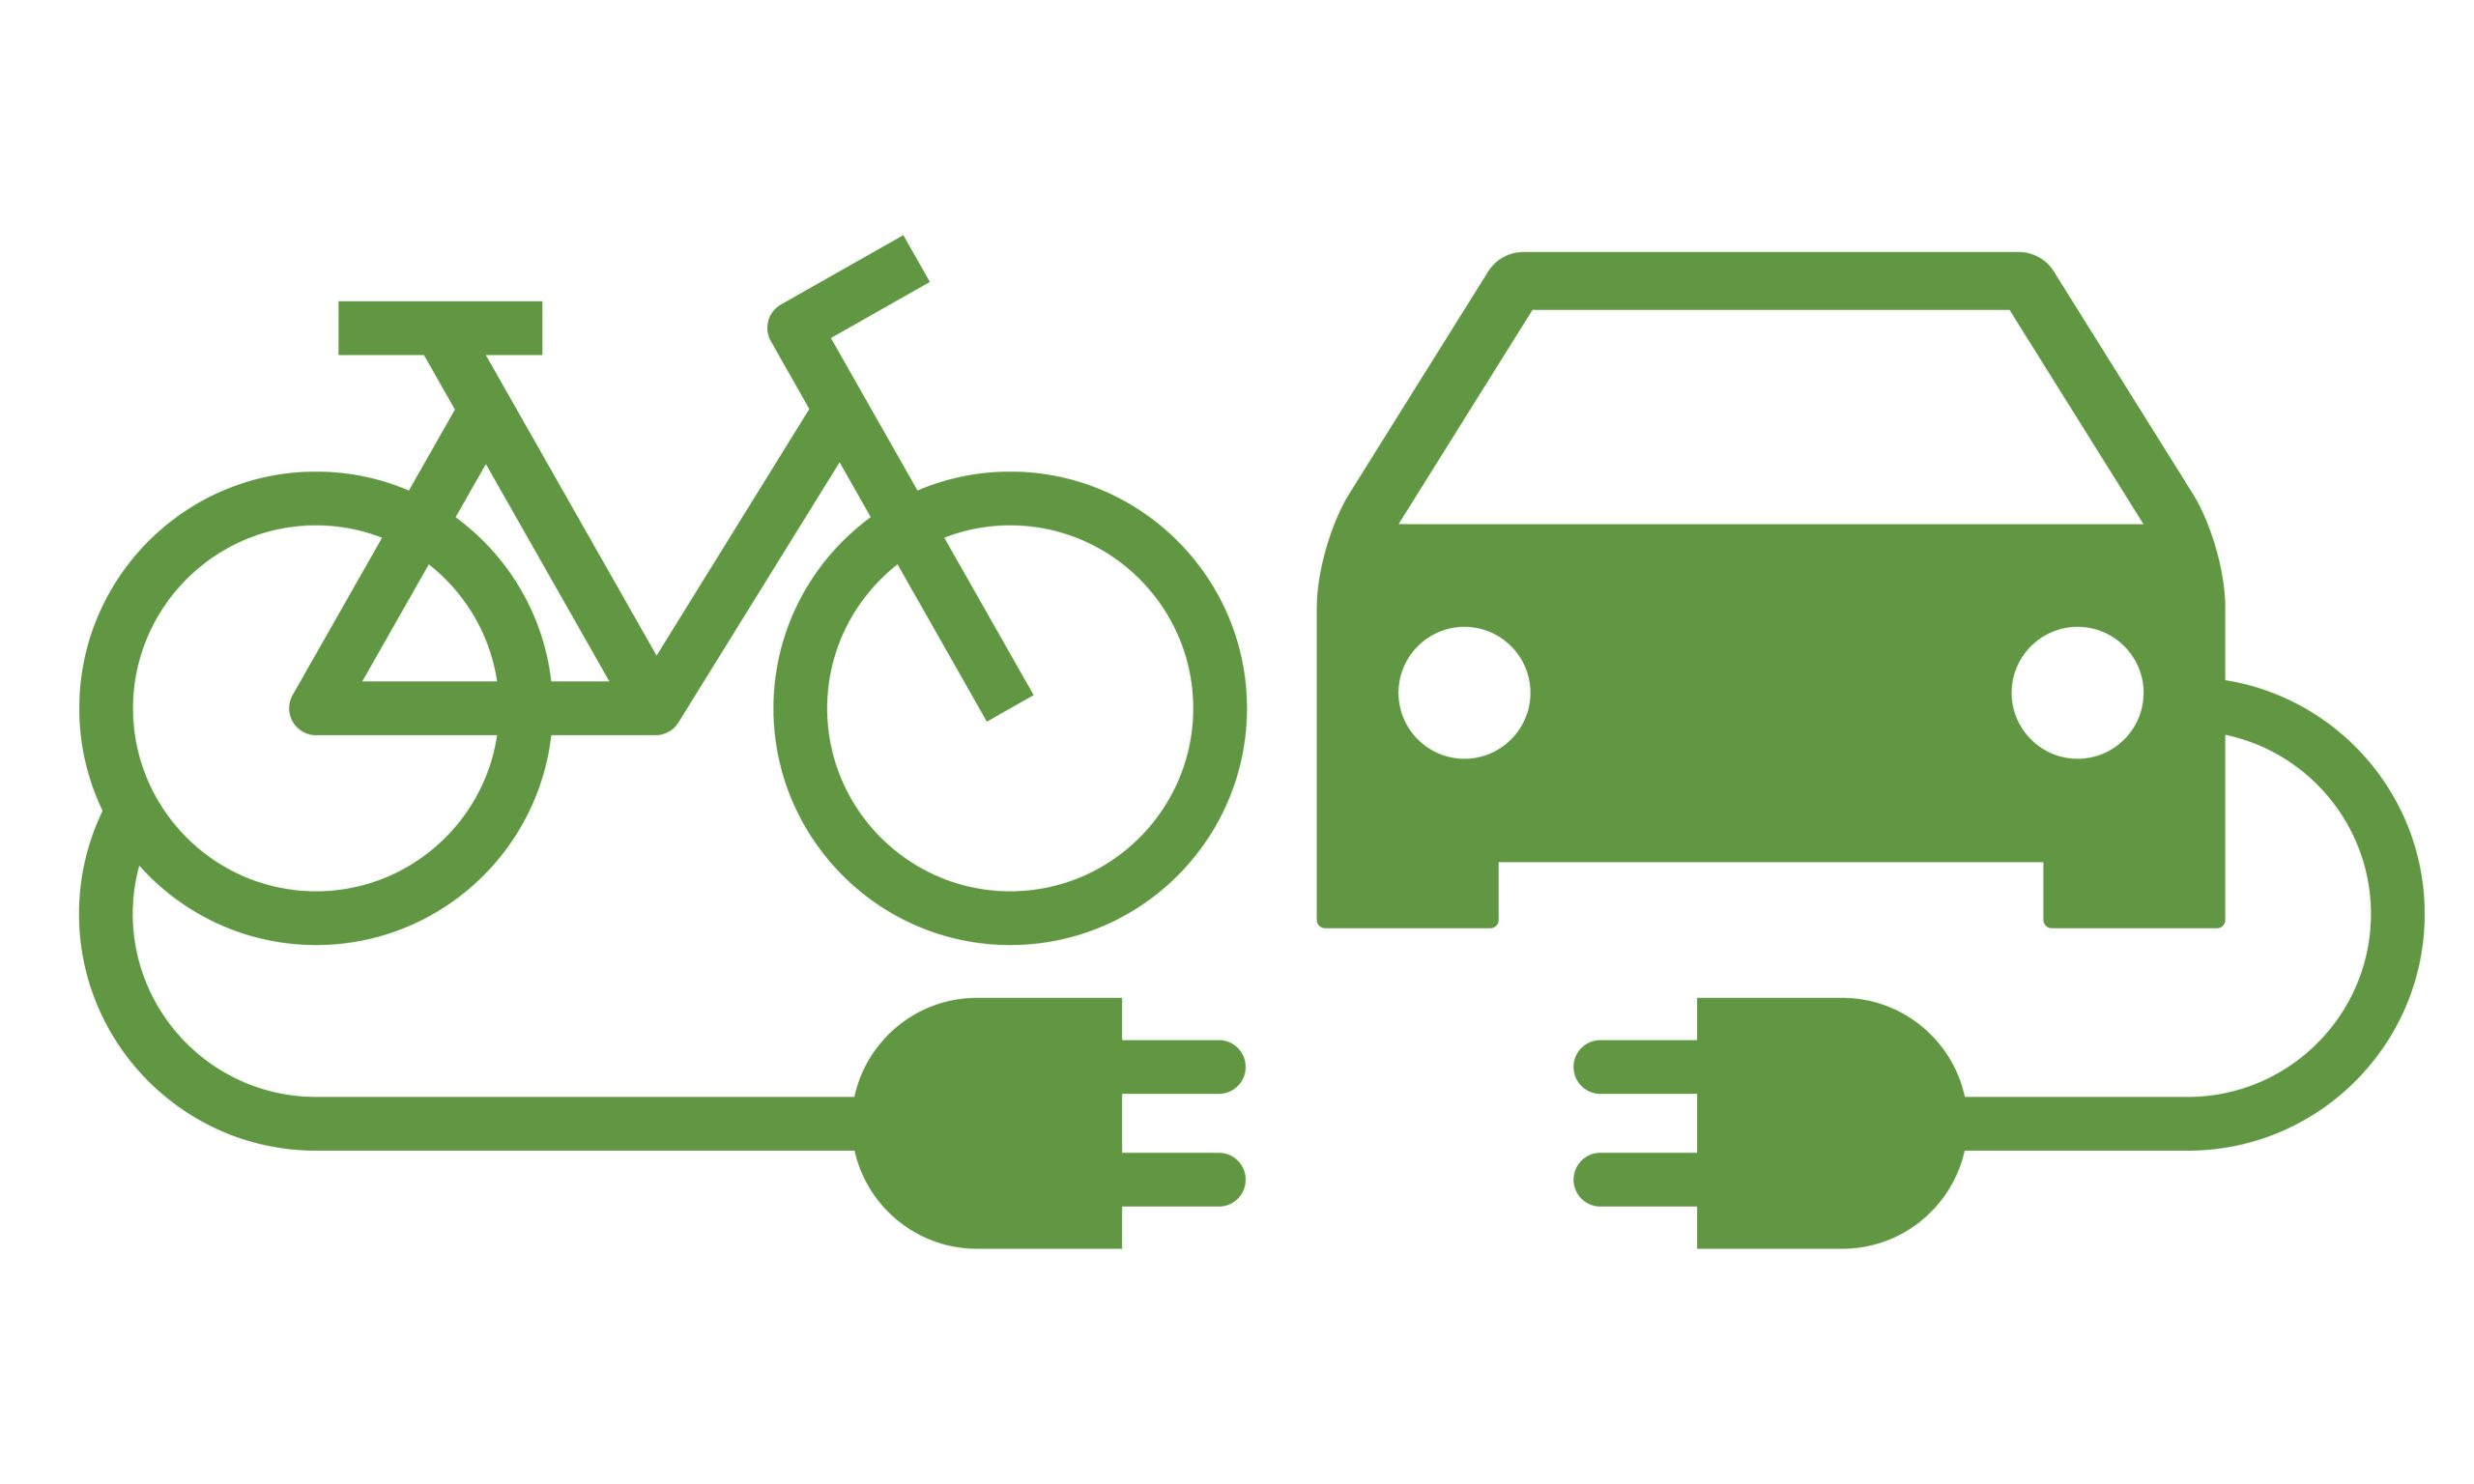 Electric car and electric bike icon